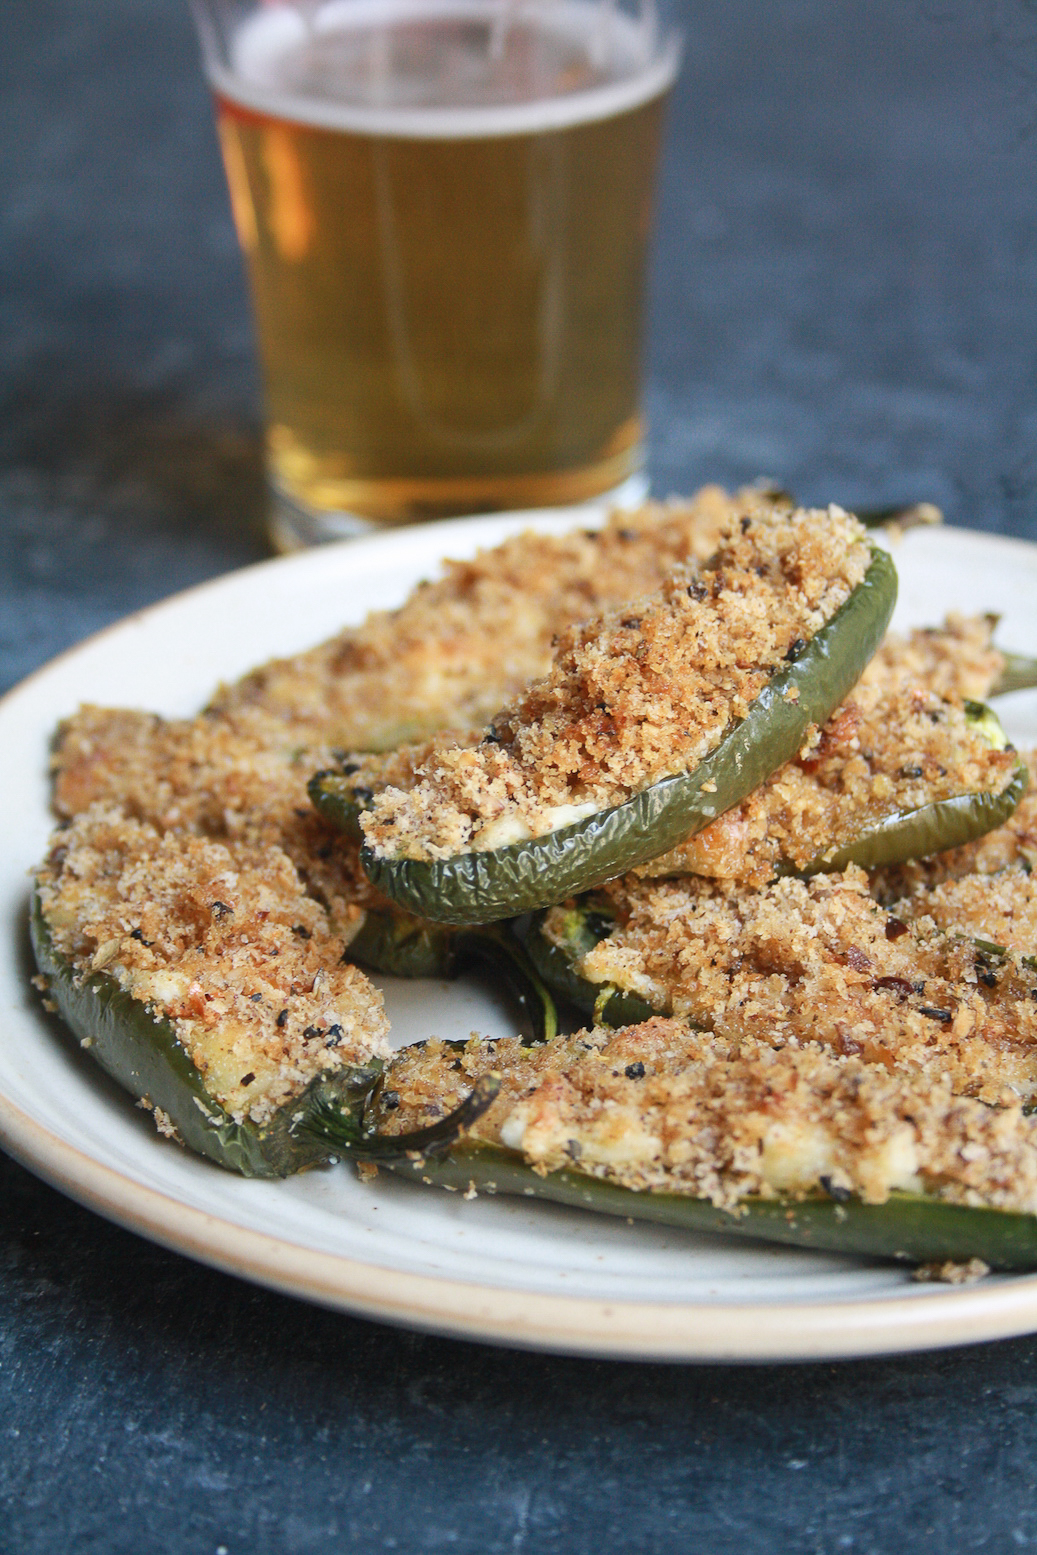 Spicy baked jalapeño poppers with mozzarella cheese topped with crunchy breadcrumbs for a healthier snack!